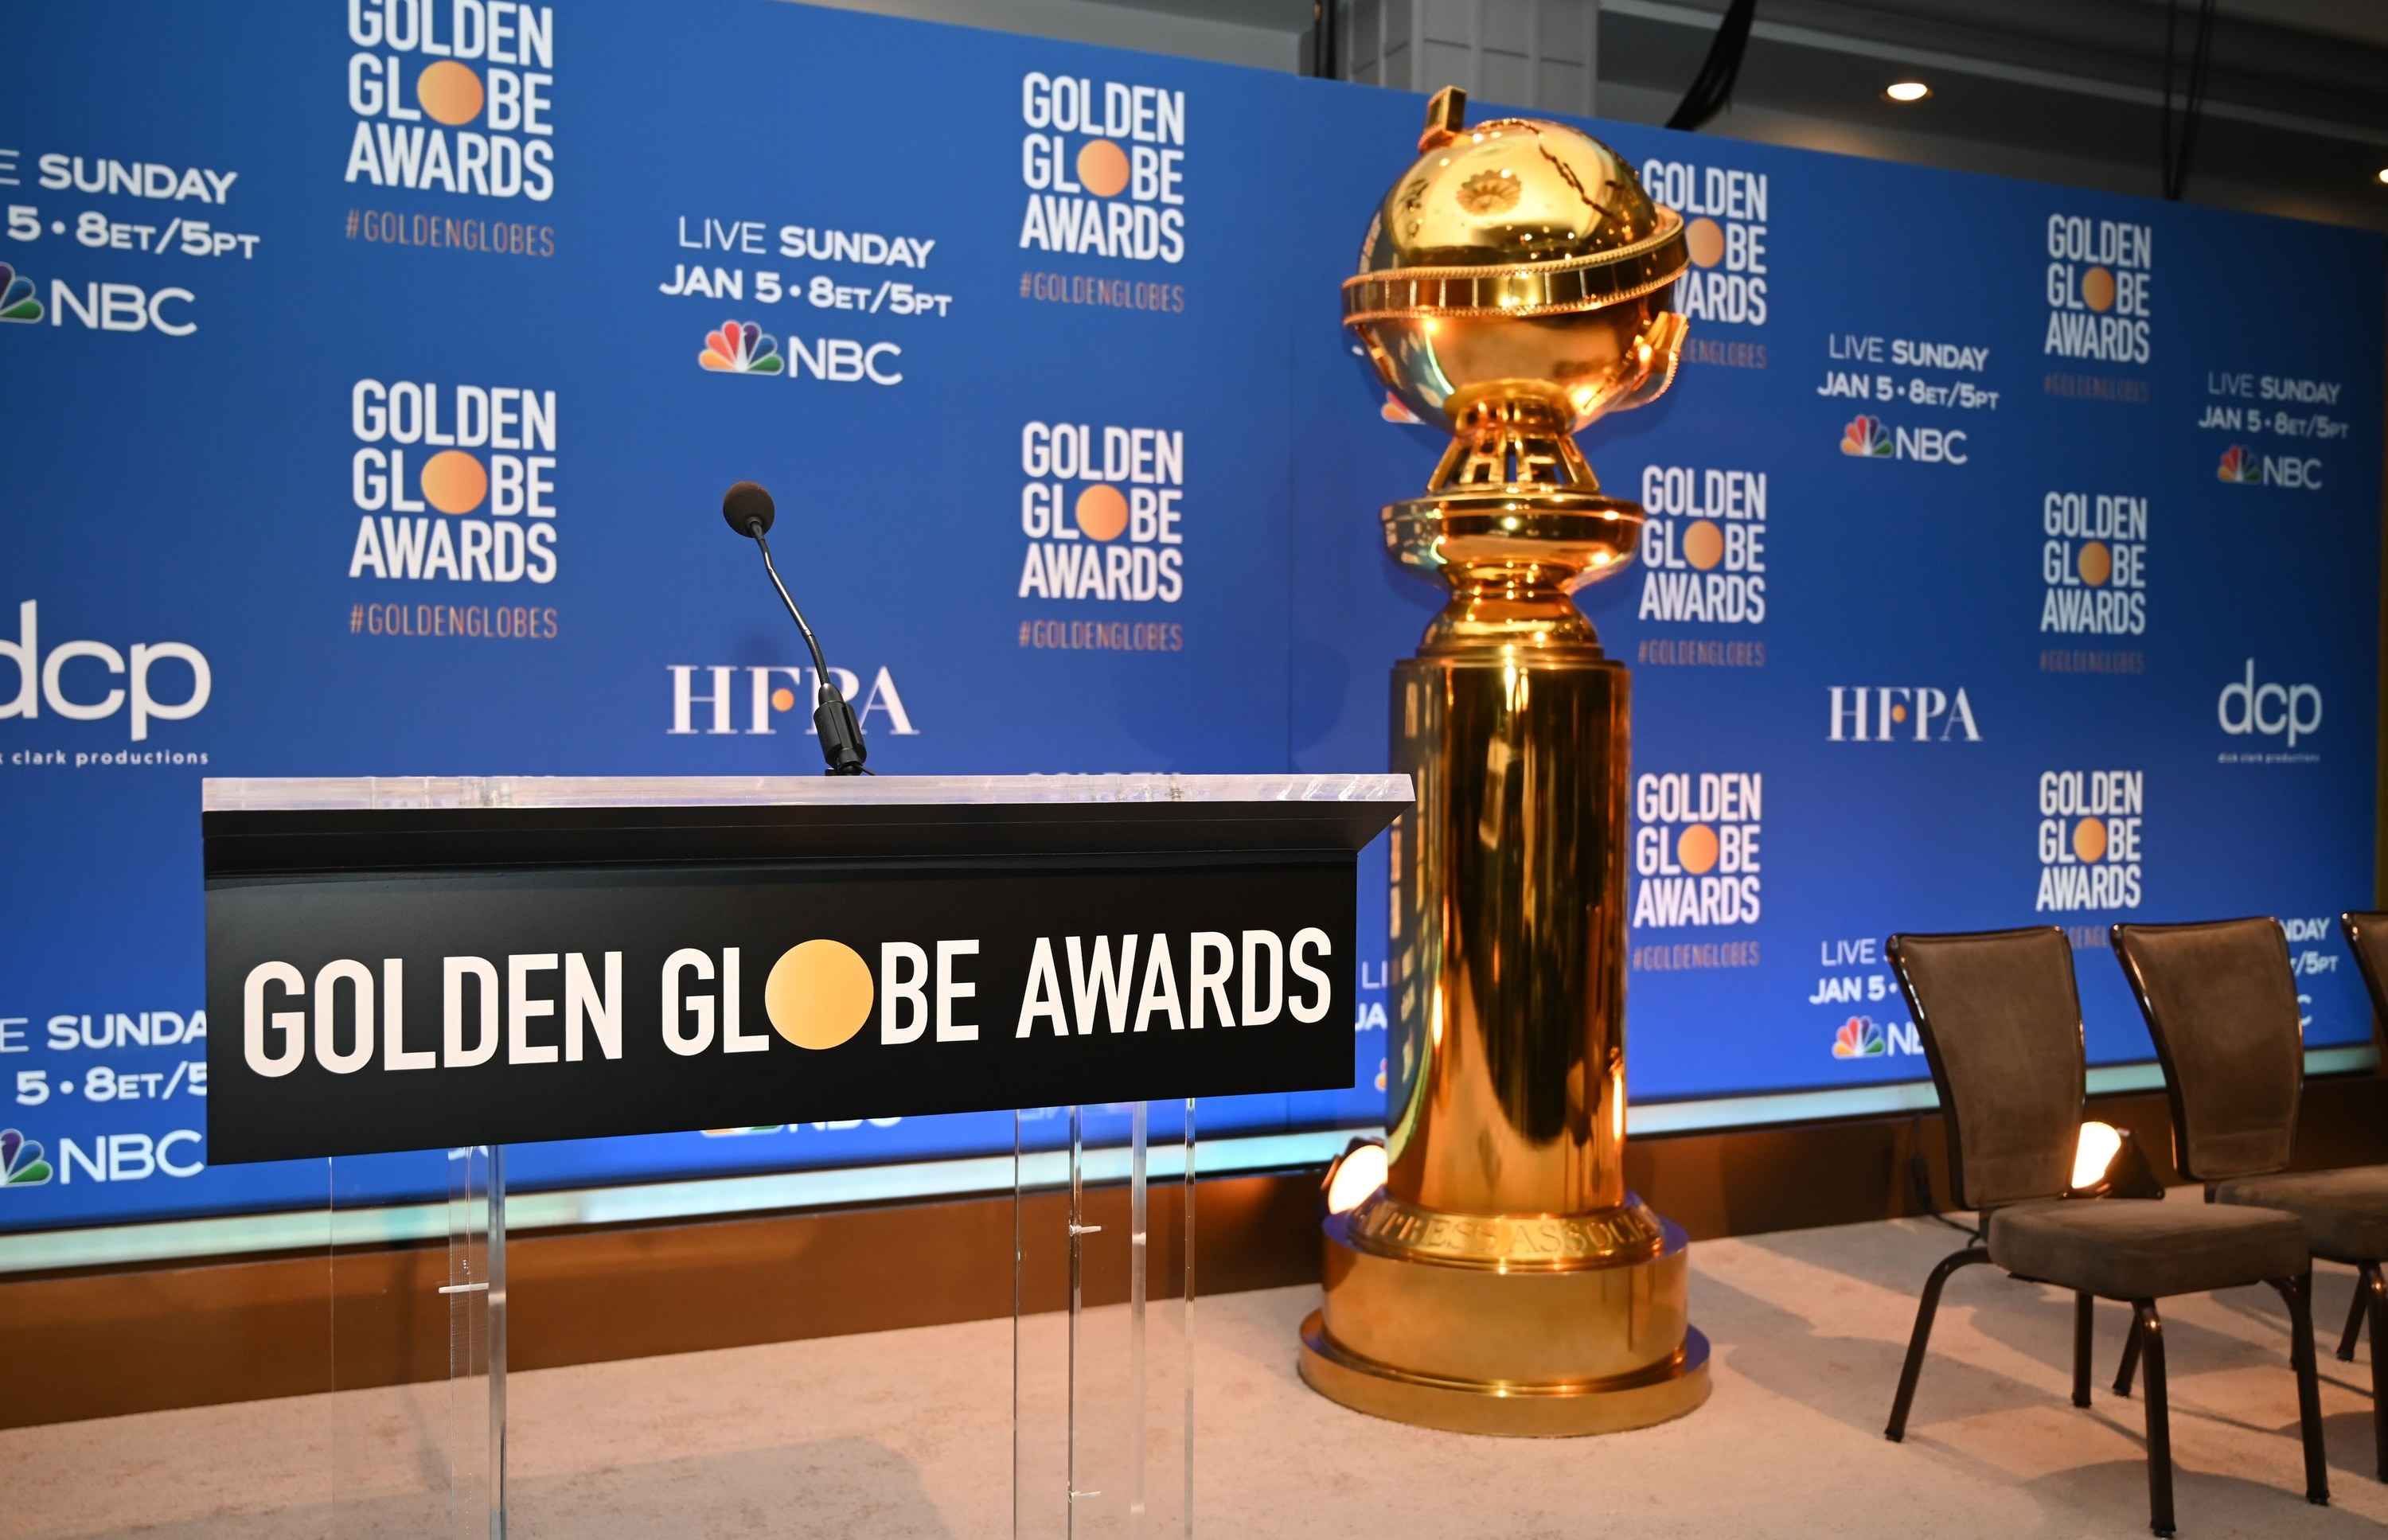 A large-sized Golden Globes trophy next to a podium